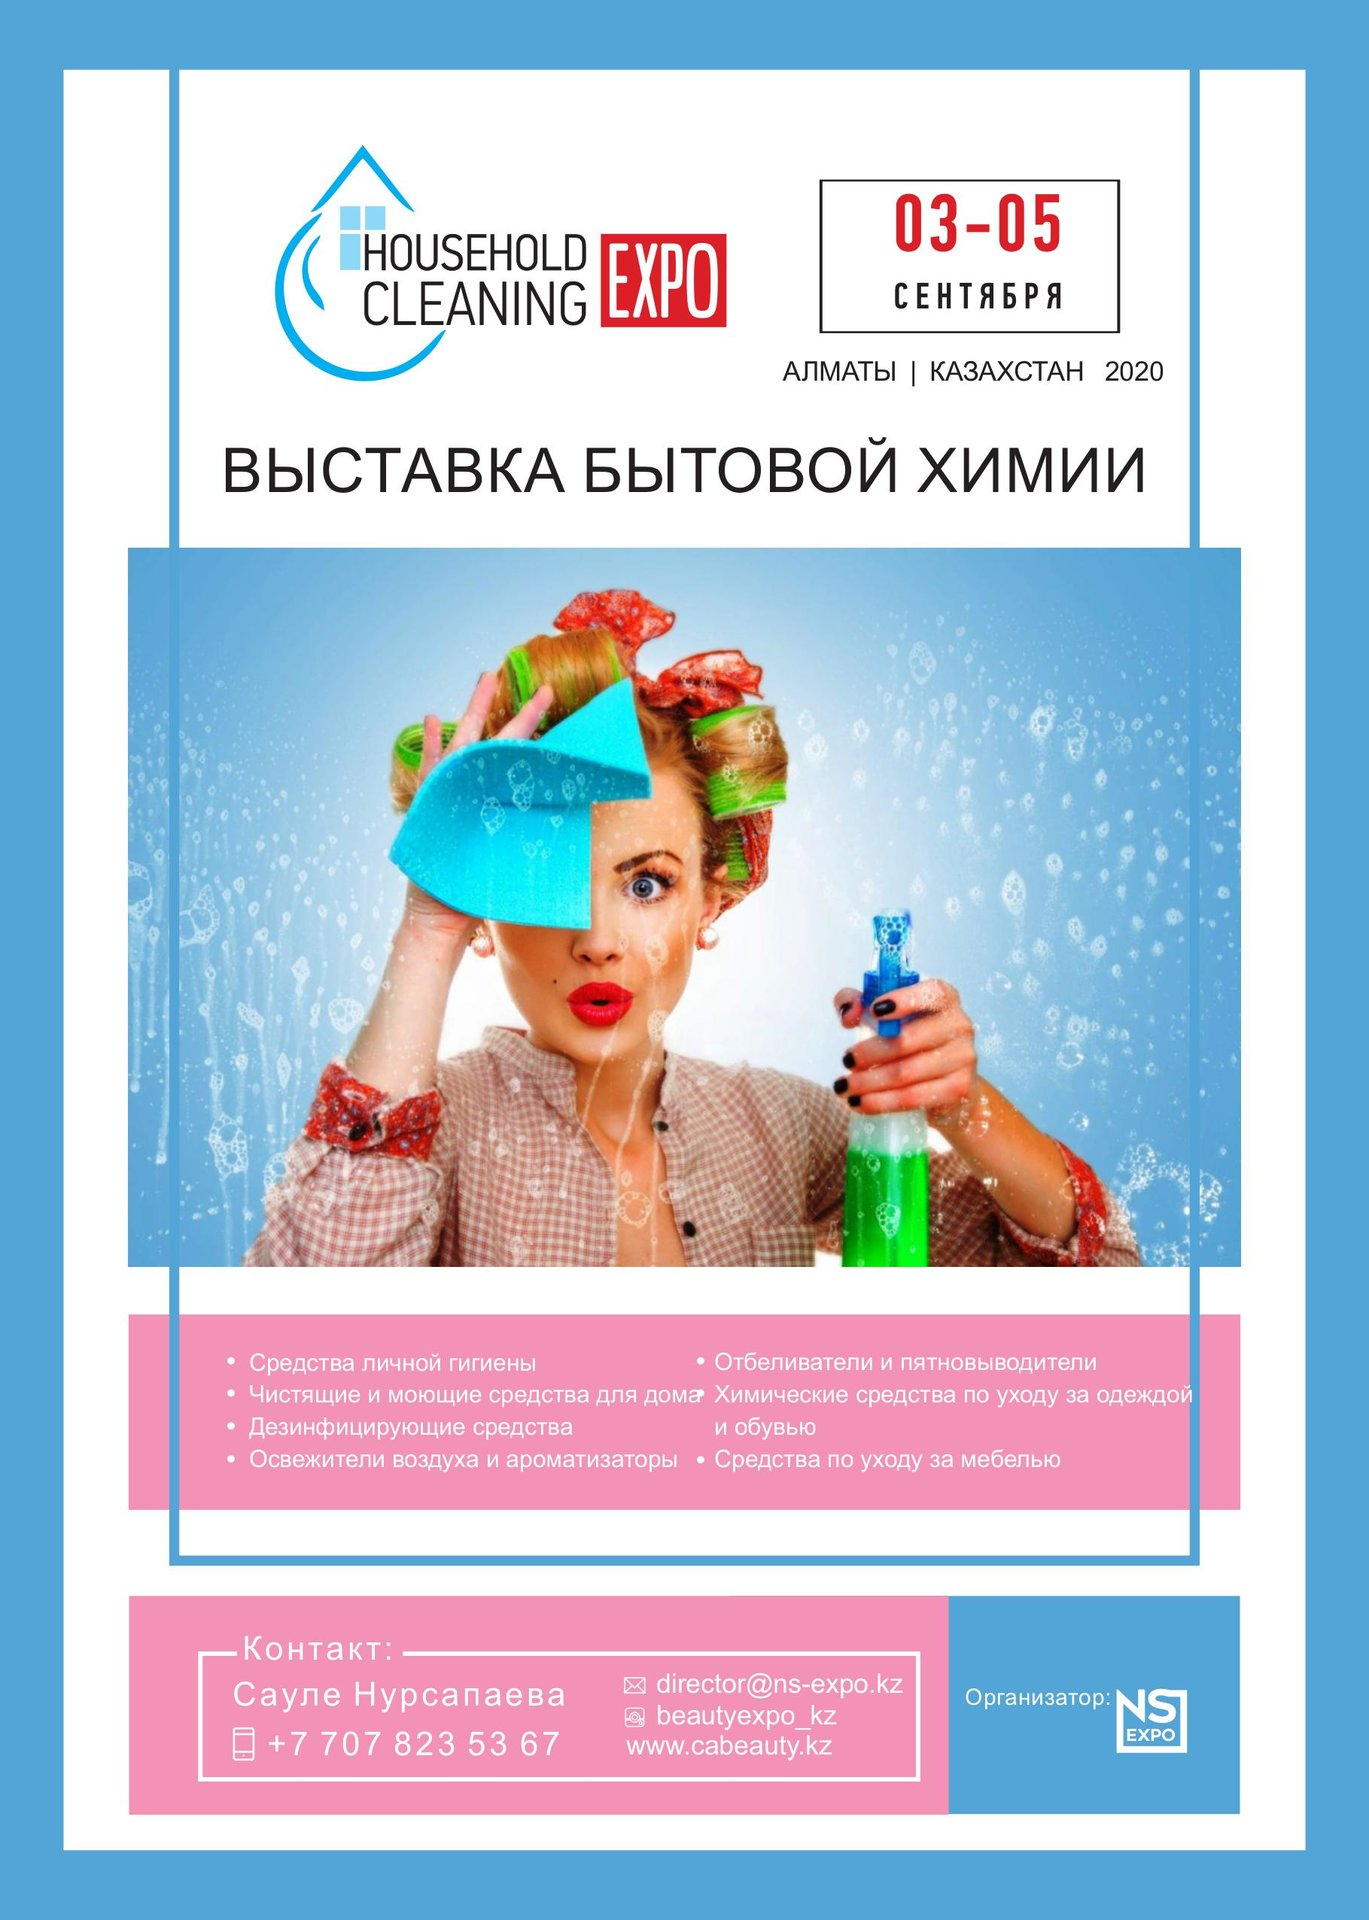 Household-Cleaning-expo-2020